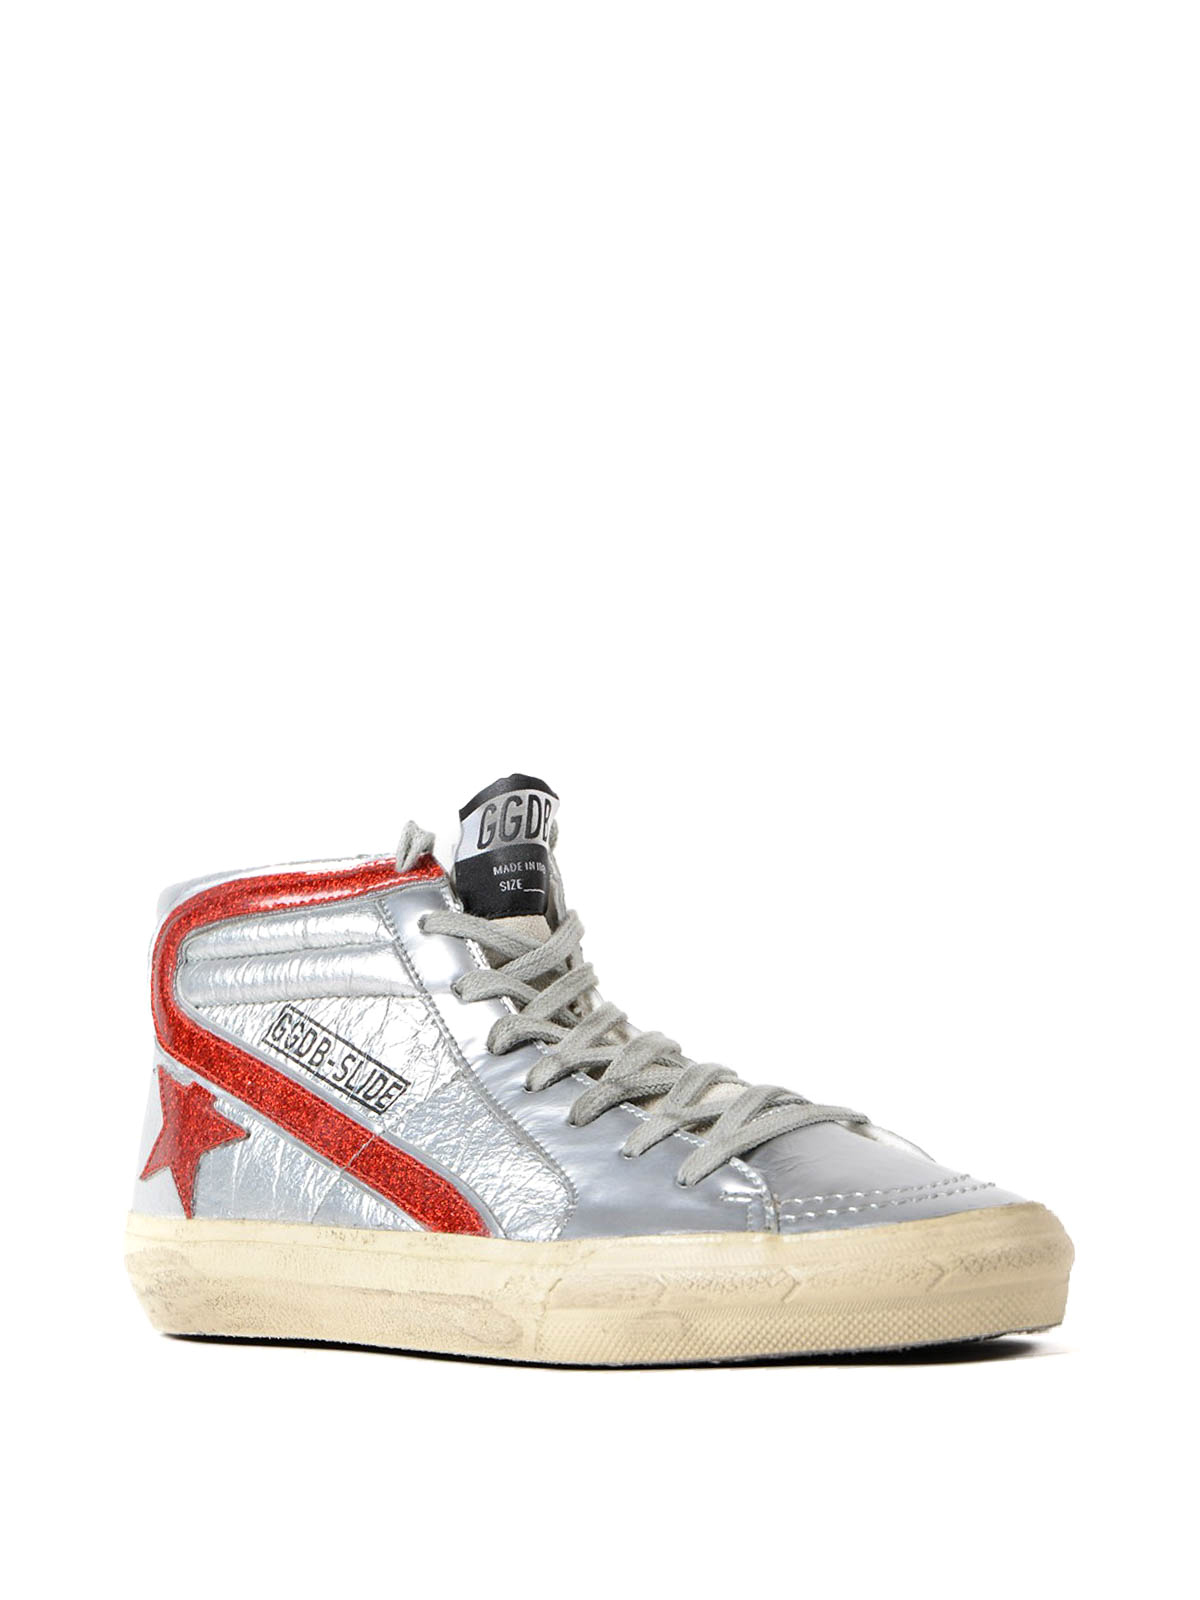 golden goose スニーカー slide archive スニーカー garws595f7